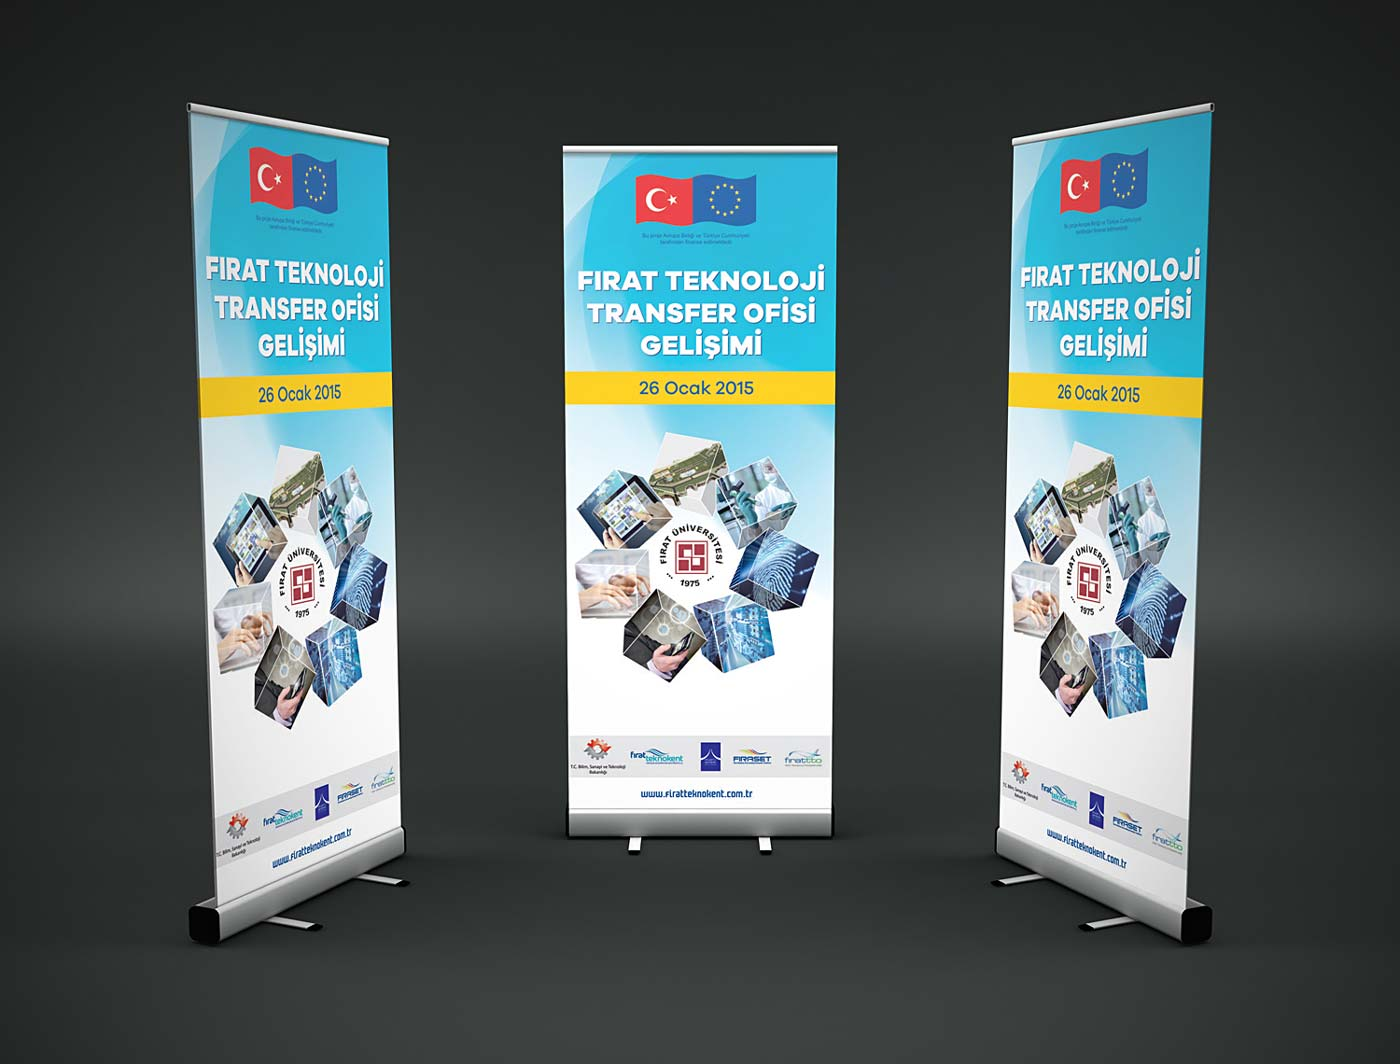 firat tto gelisim calistayi roll up banner